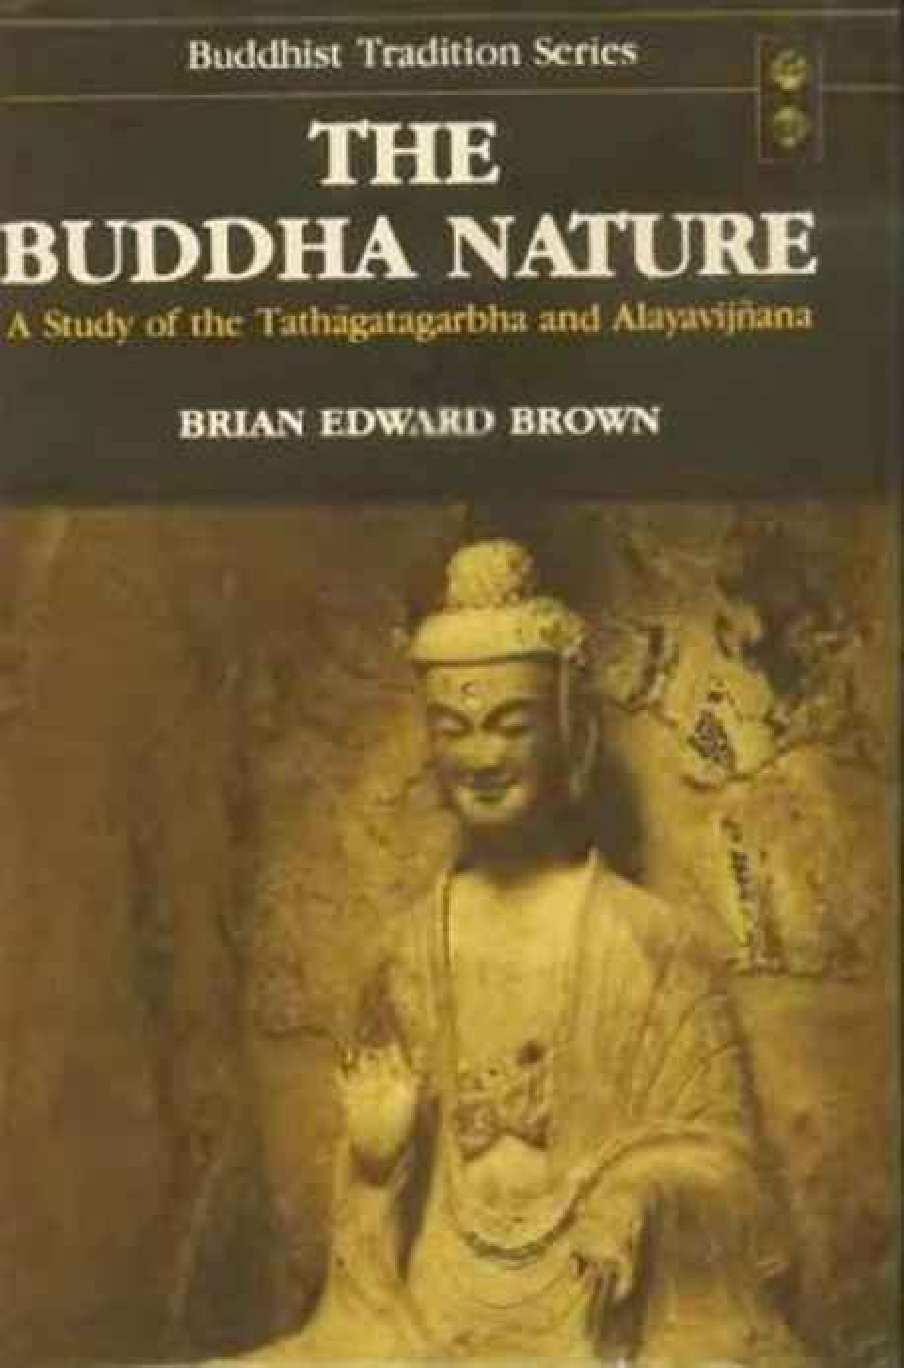 The Buddha Nature